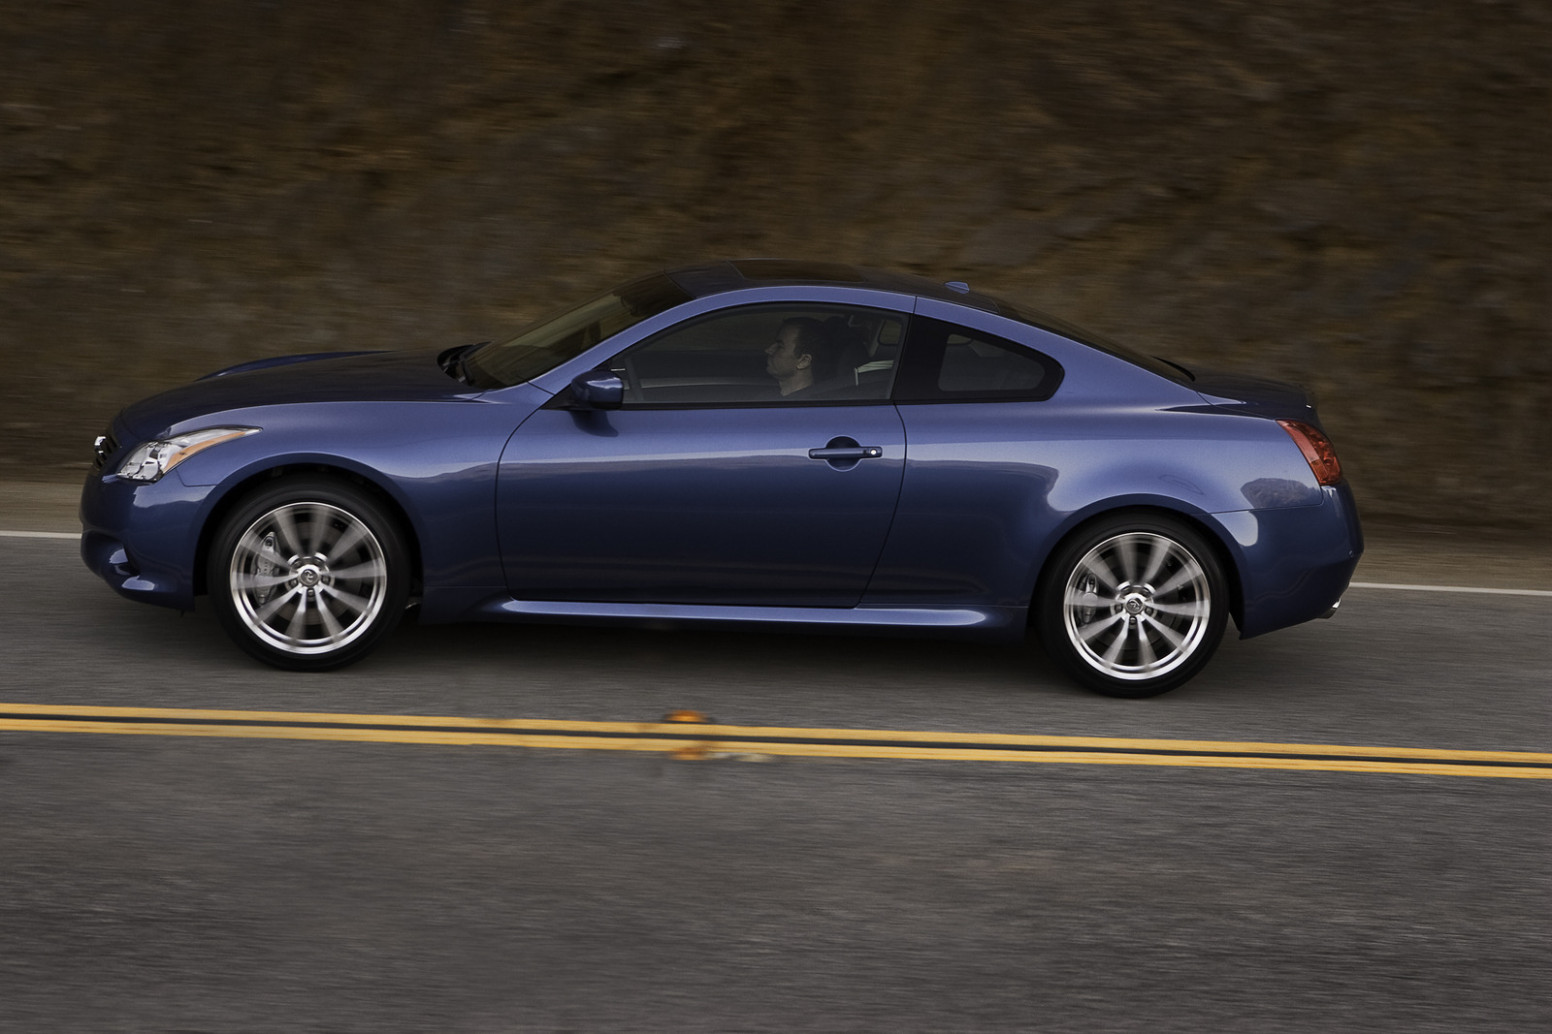 Overview 2022 Infiniti G37